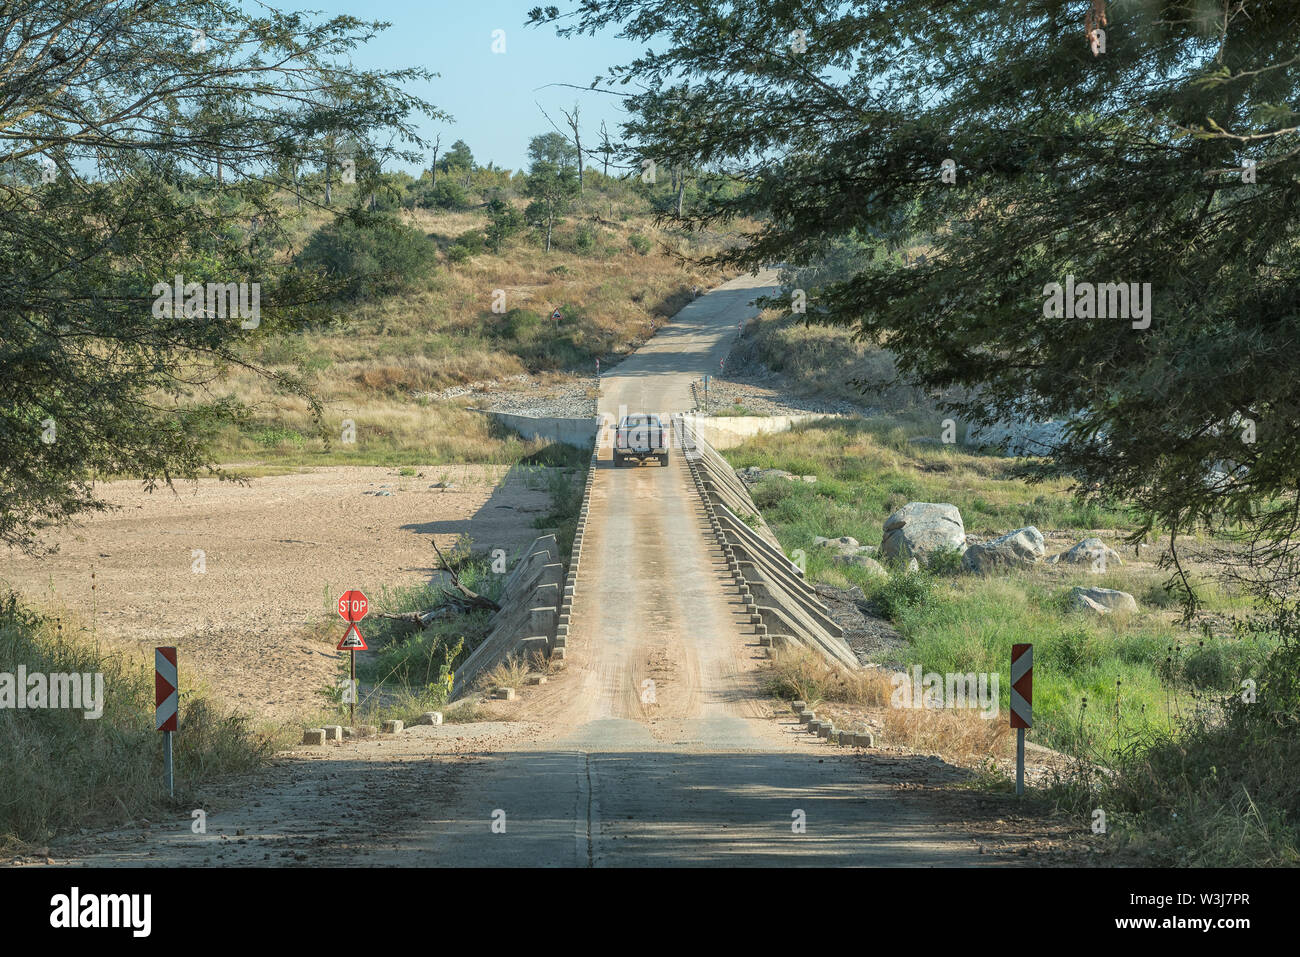 KRUGER NATIONAL PARK, SOUTH AFRICA - MAY 4, 2019: Single lane low water road bridge on road S25 over the Bume River. A vehicle is crossing the river Stock Photo